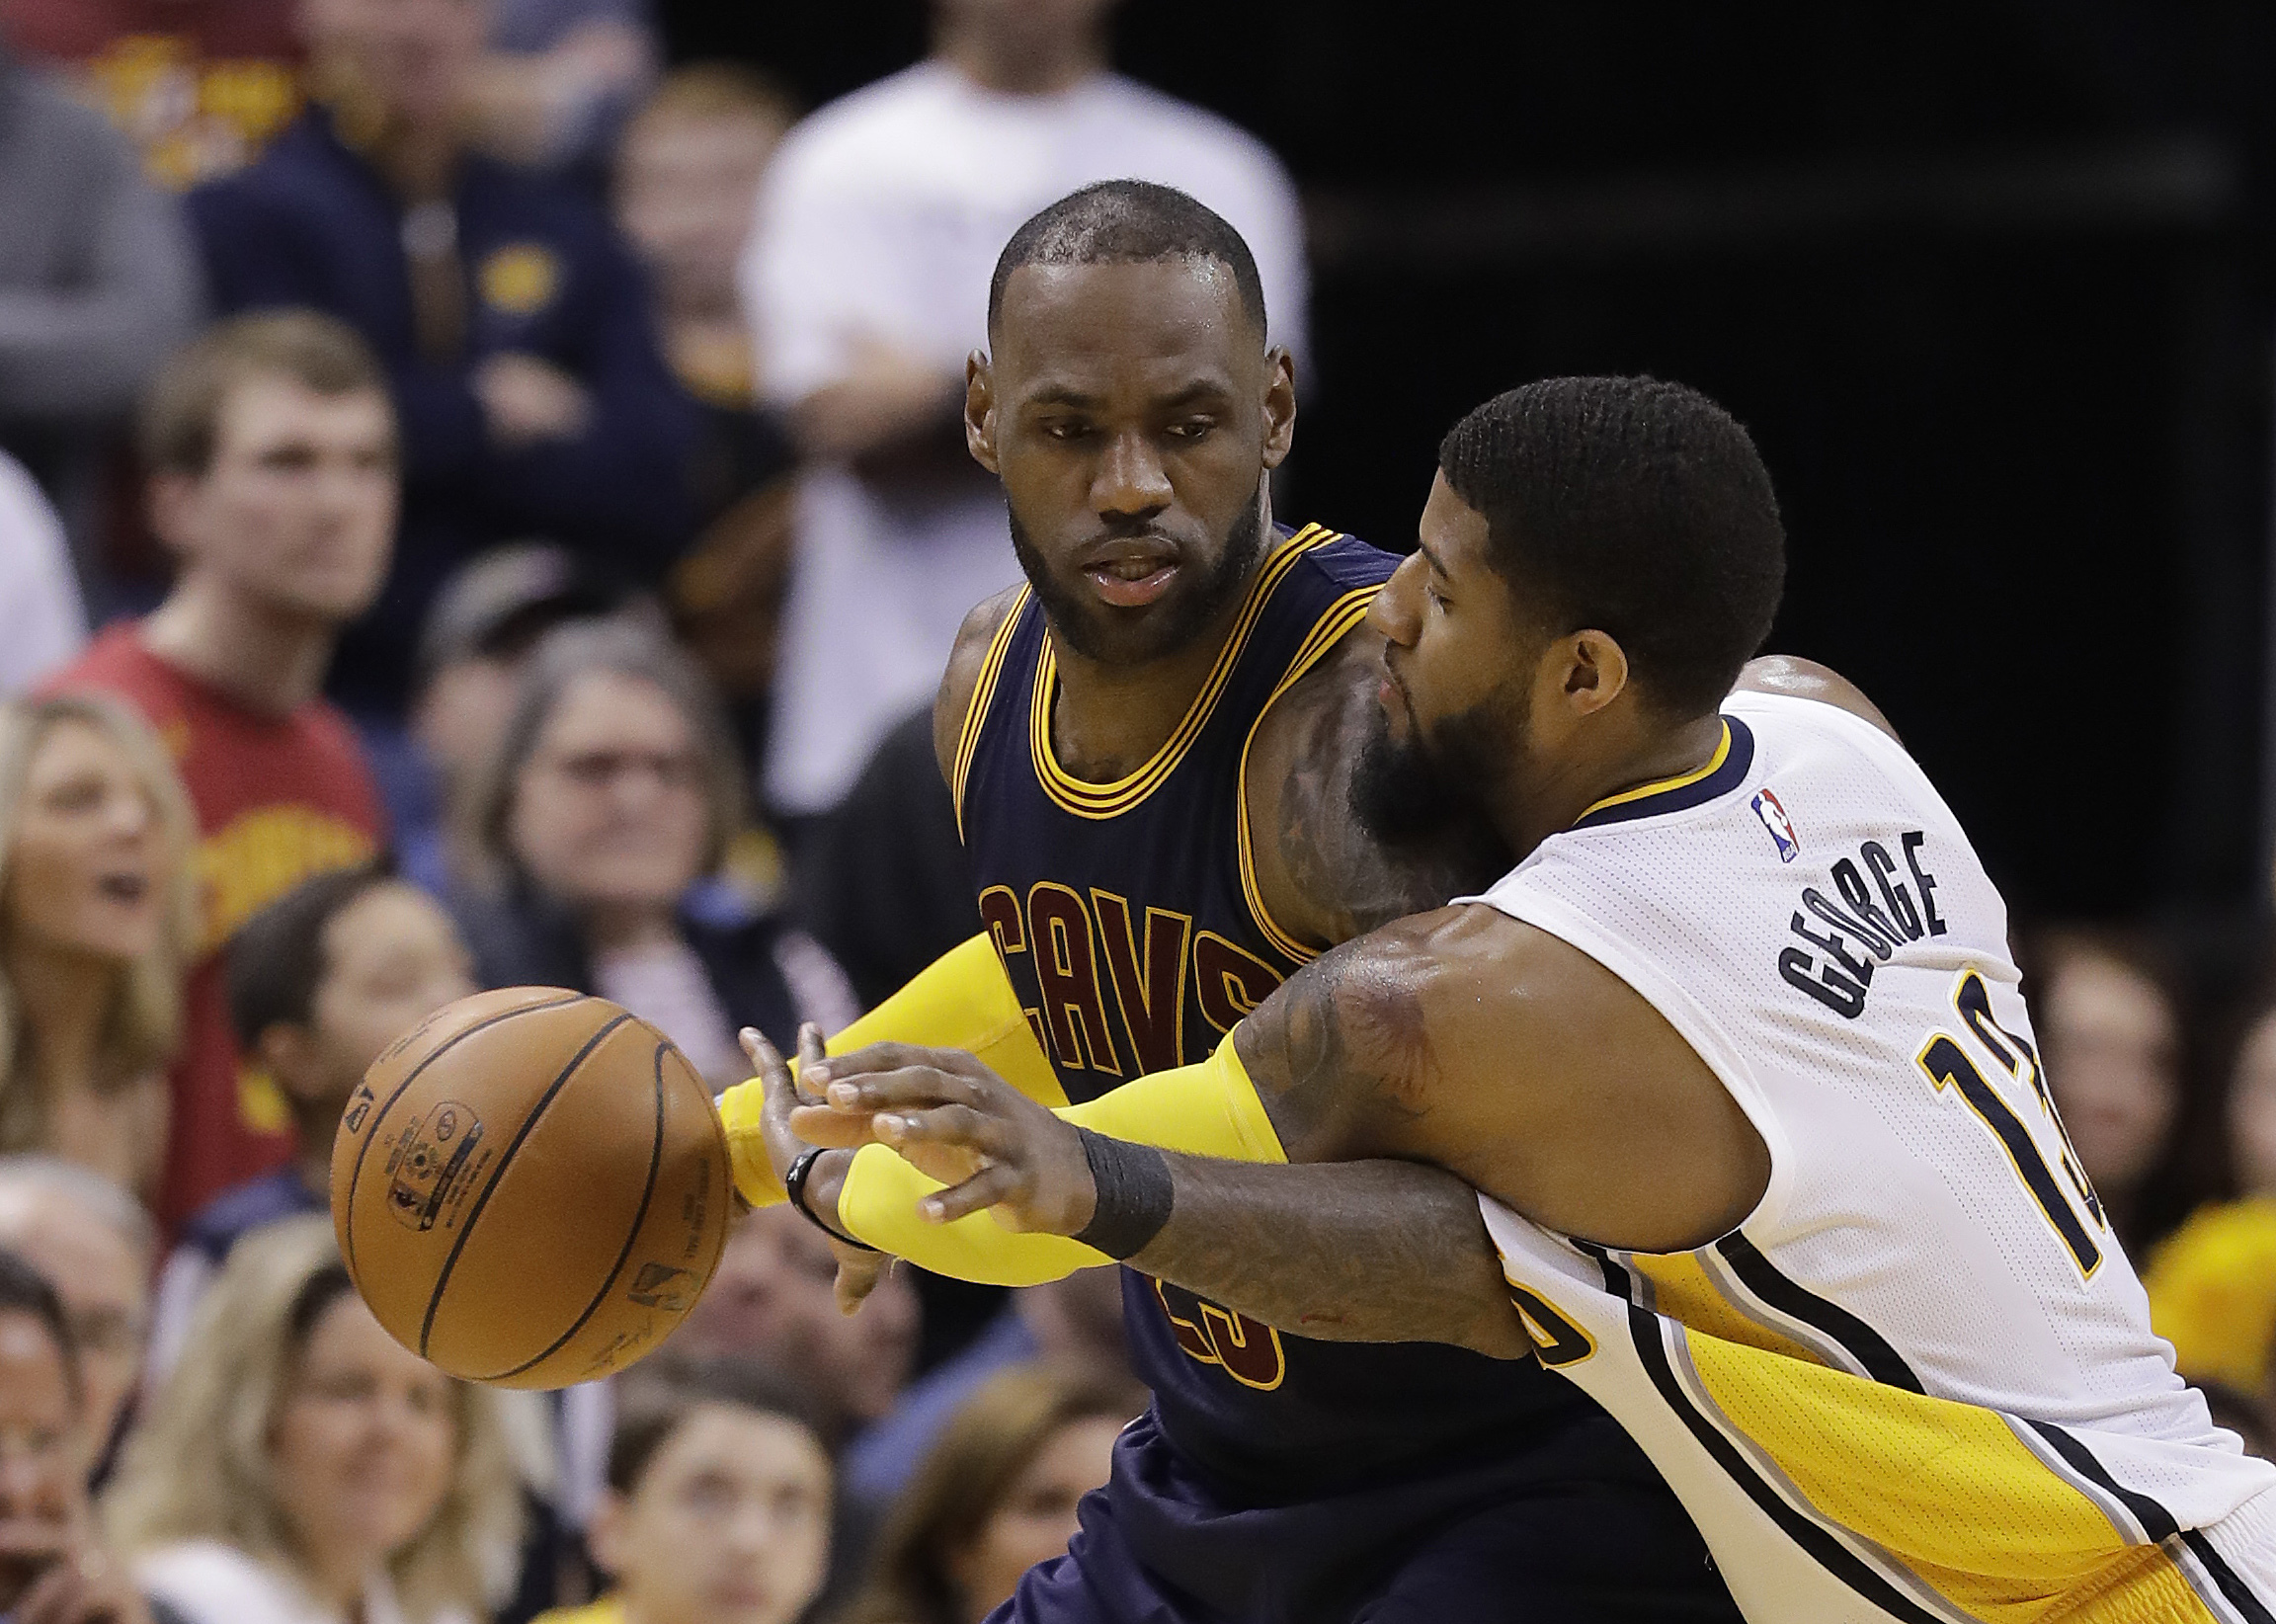 Cleveland Cavaliers' LeBron James is defended by Indiana Pacers' Paul George during the second half in Game 4 of their first-round NBA basketball playoff series, Sunday, April 23, in Indianapolis. (AP Photo/Darron Cummings)